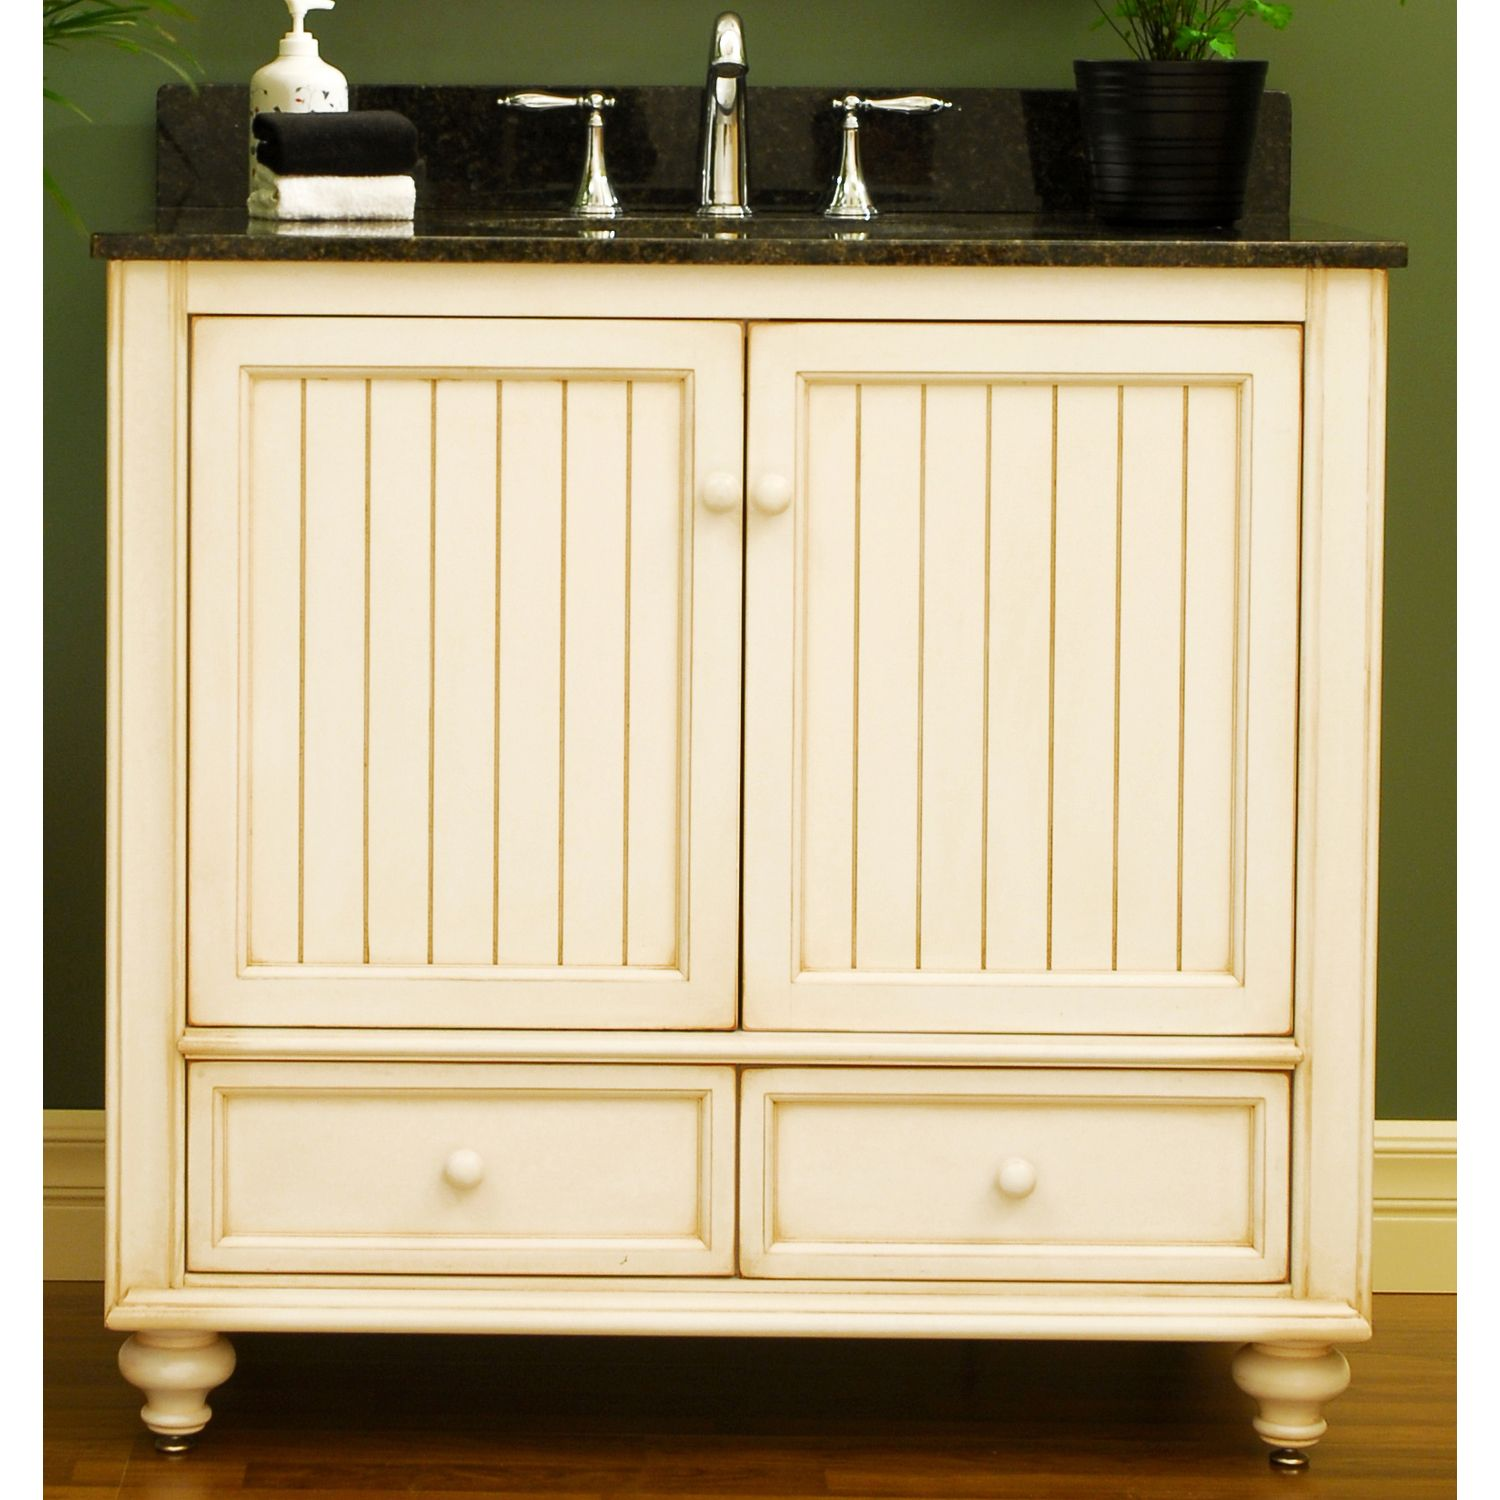 Beach cottage cabinets cottage style 36 wood bathroom vanity cabinet from the bristol - Small cottage style bathroom vanity design ...